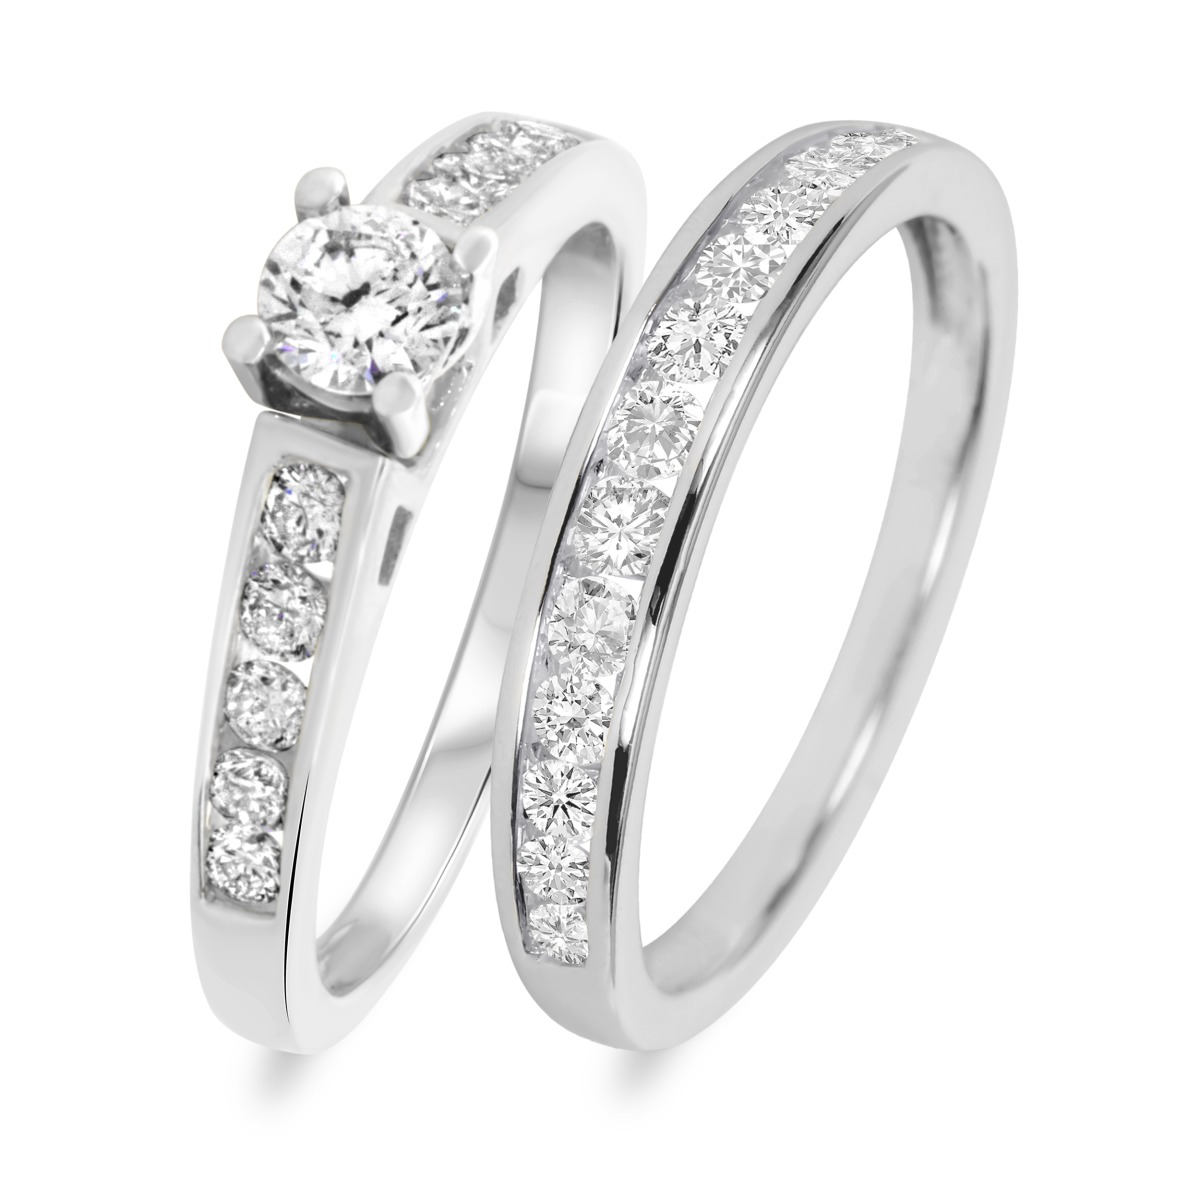 1 CT. T.W. Diamond Ladies' Bridal Wedding Ring Set 10K White Gold